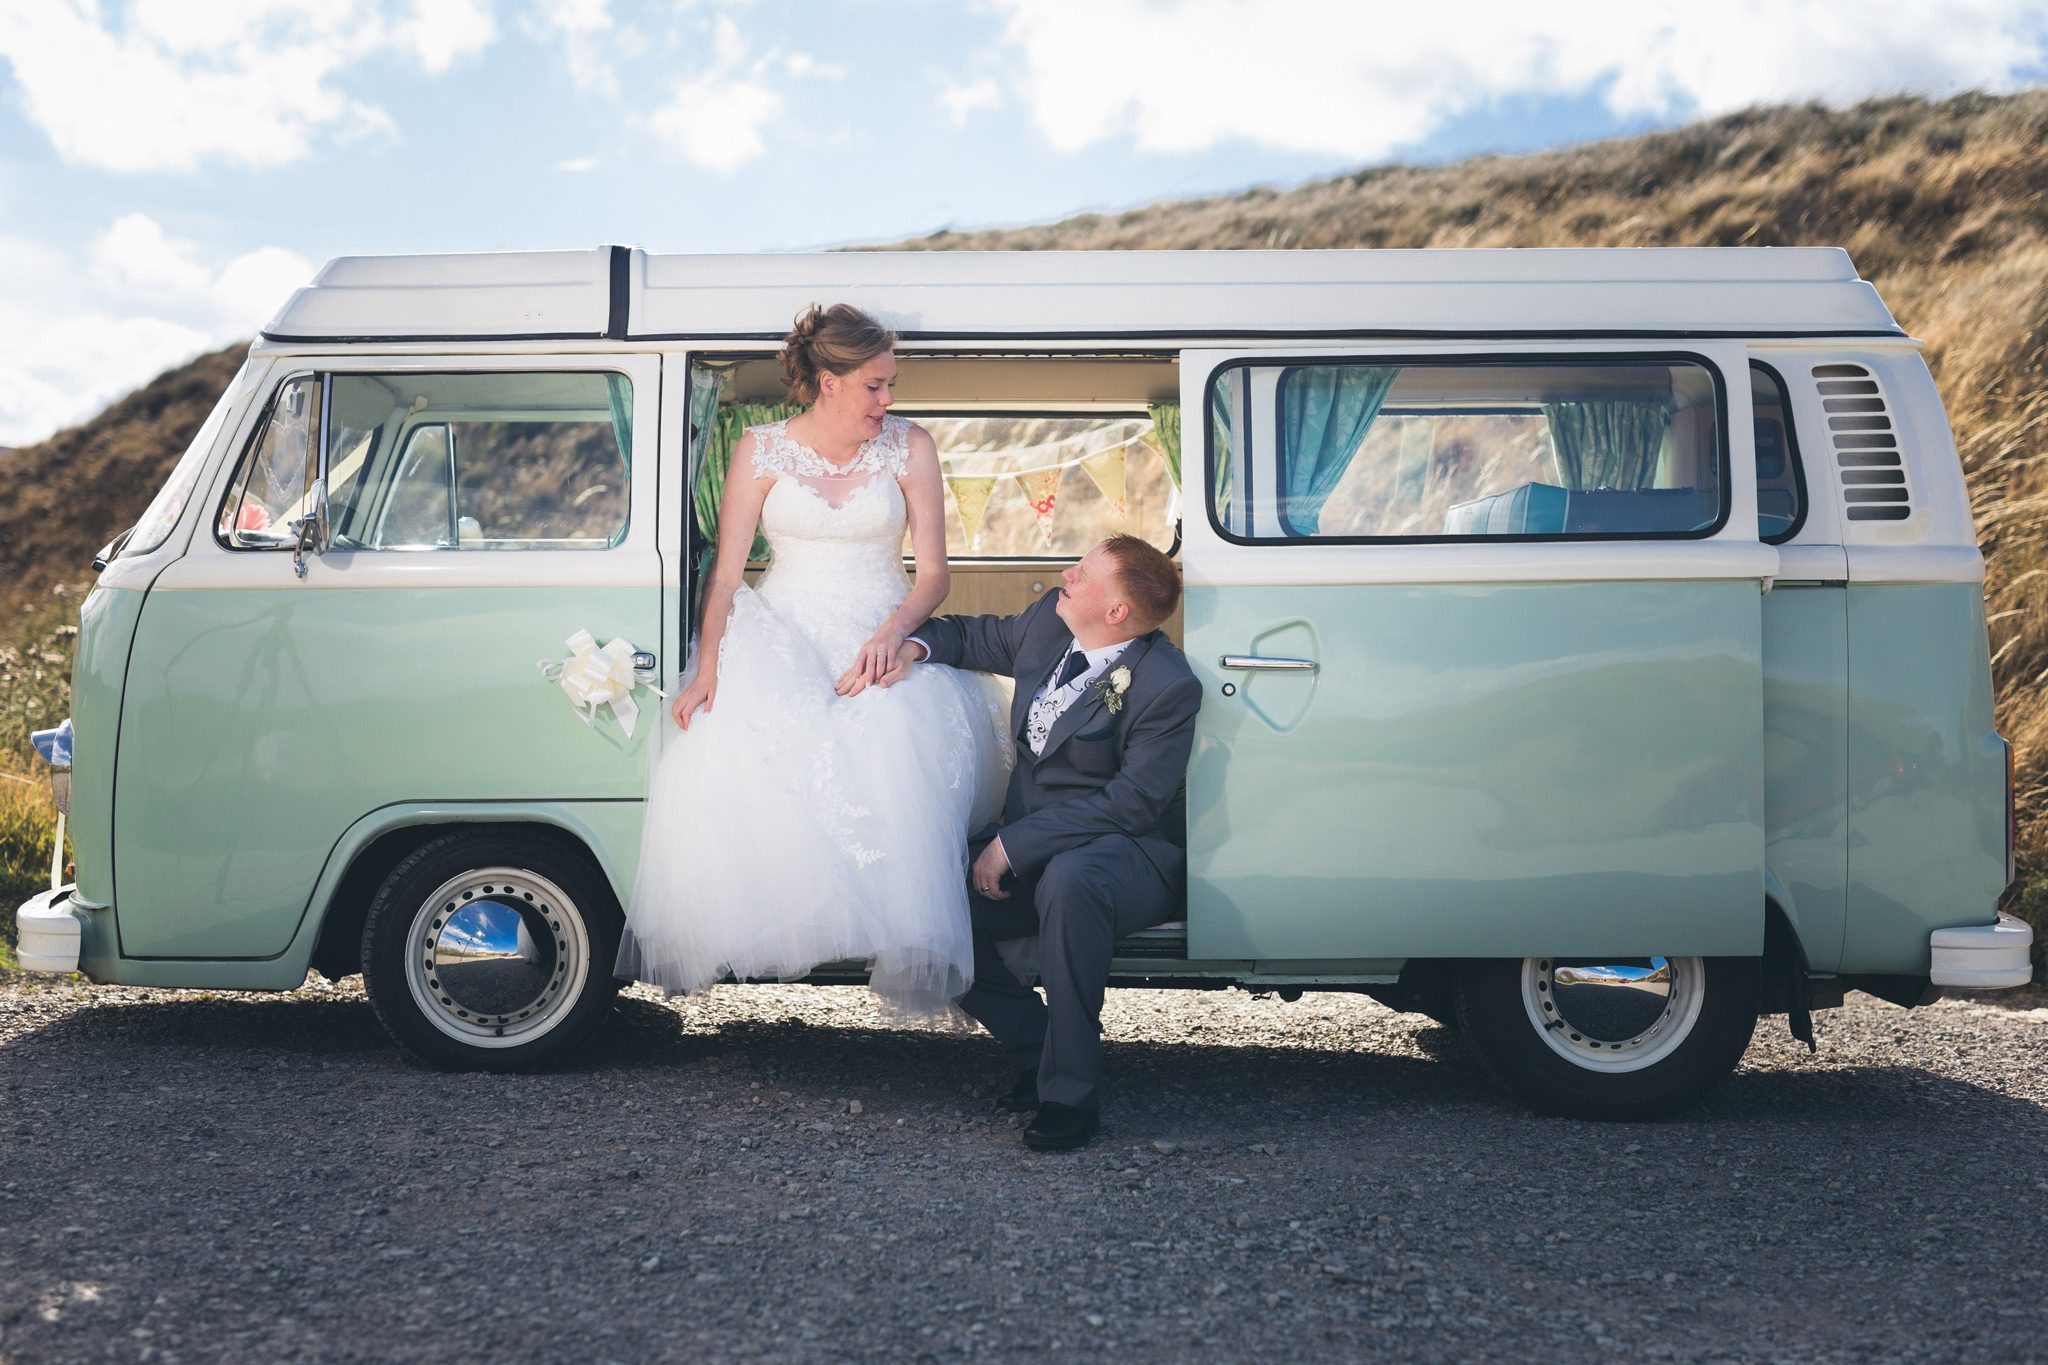 Couple at Campervan Wedding